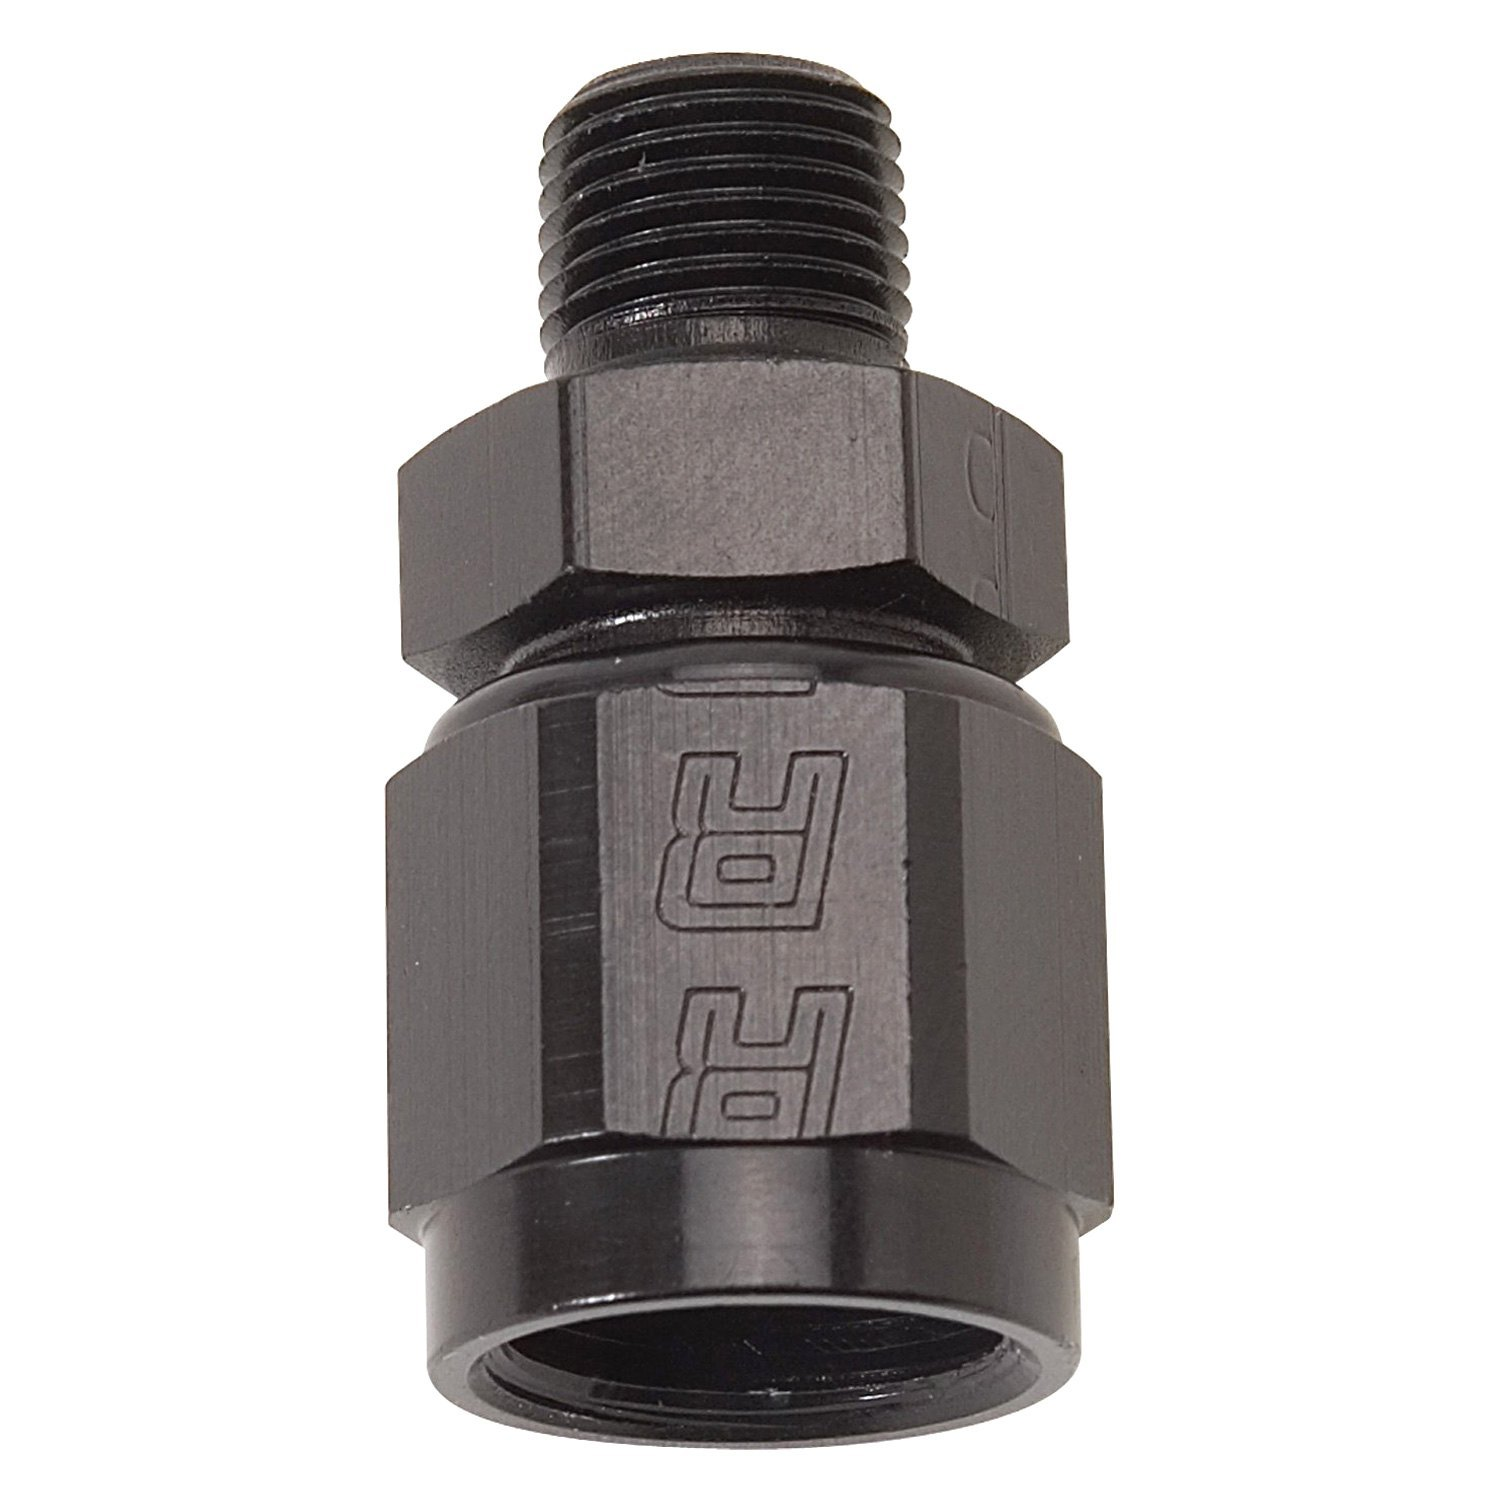 Russell  female an to male npt adapter fitting